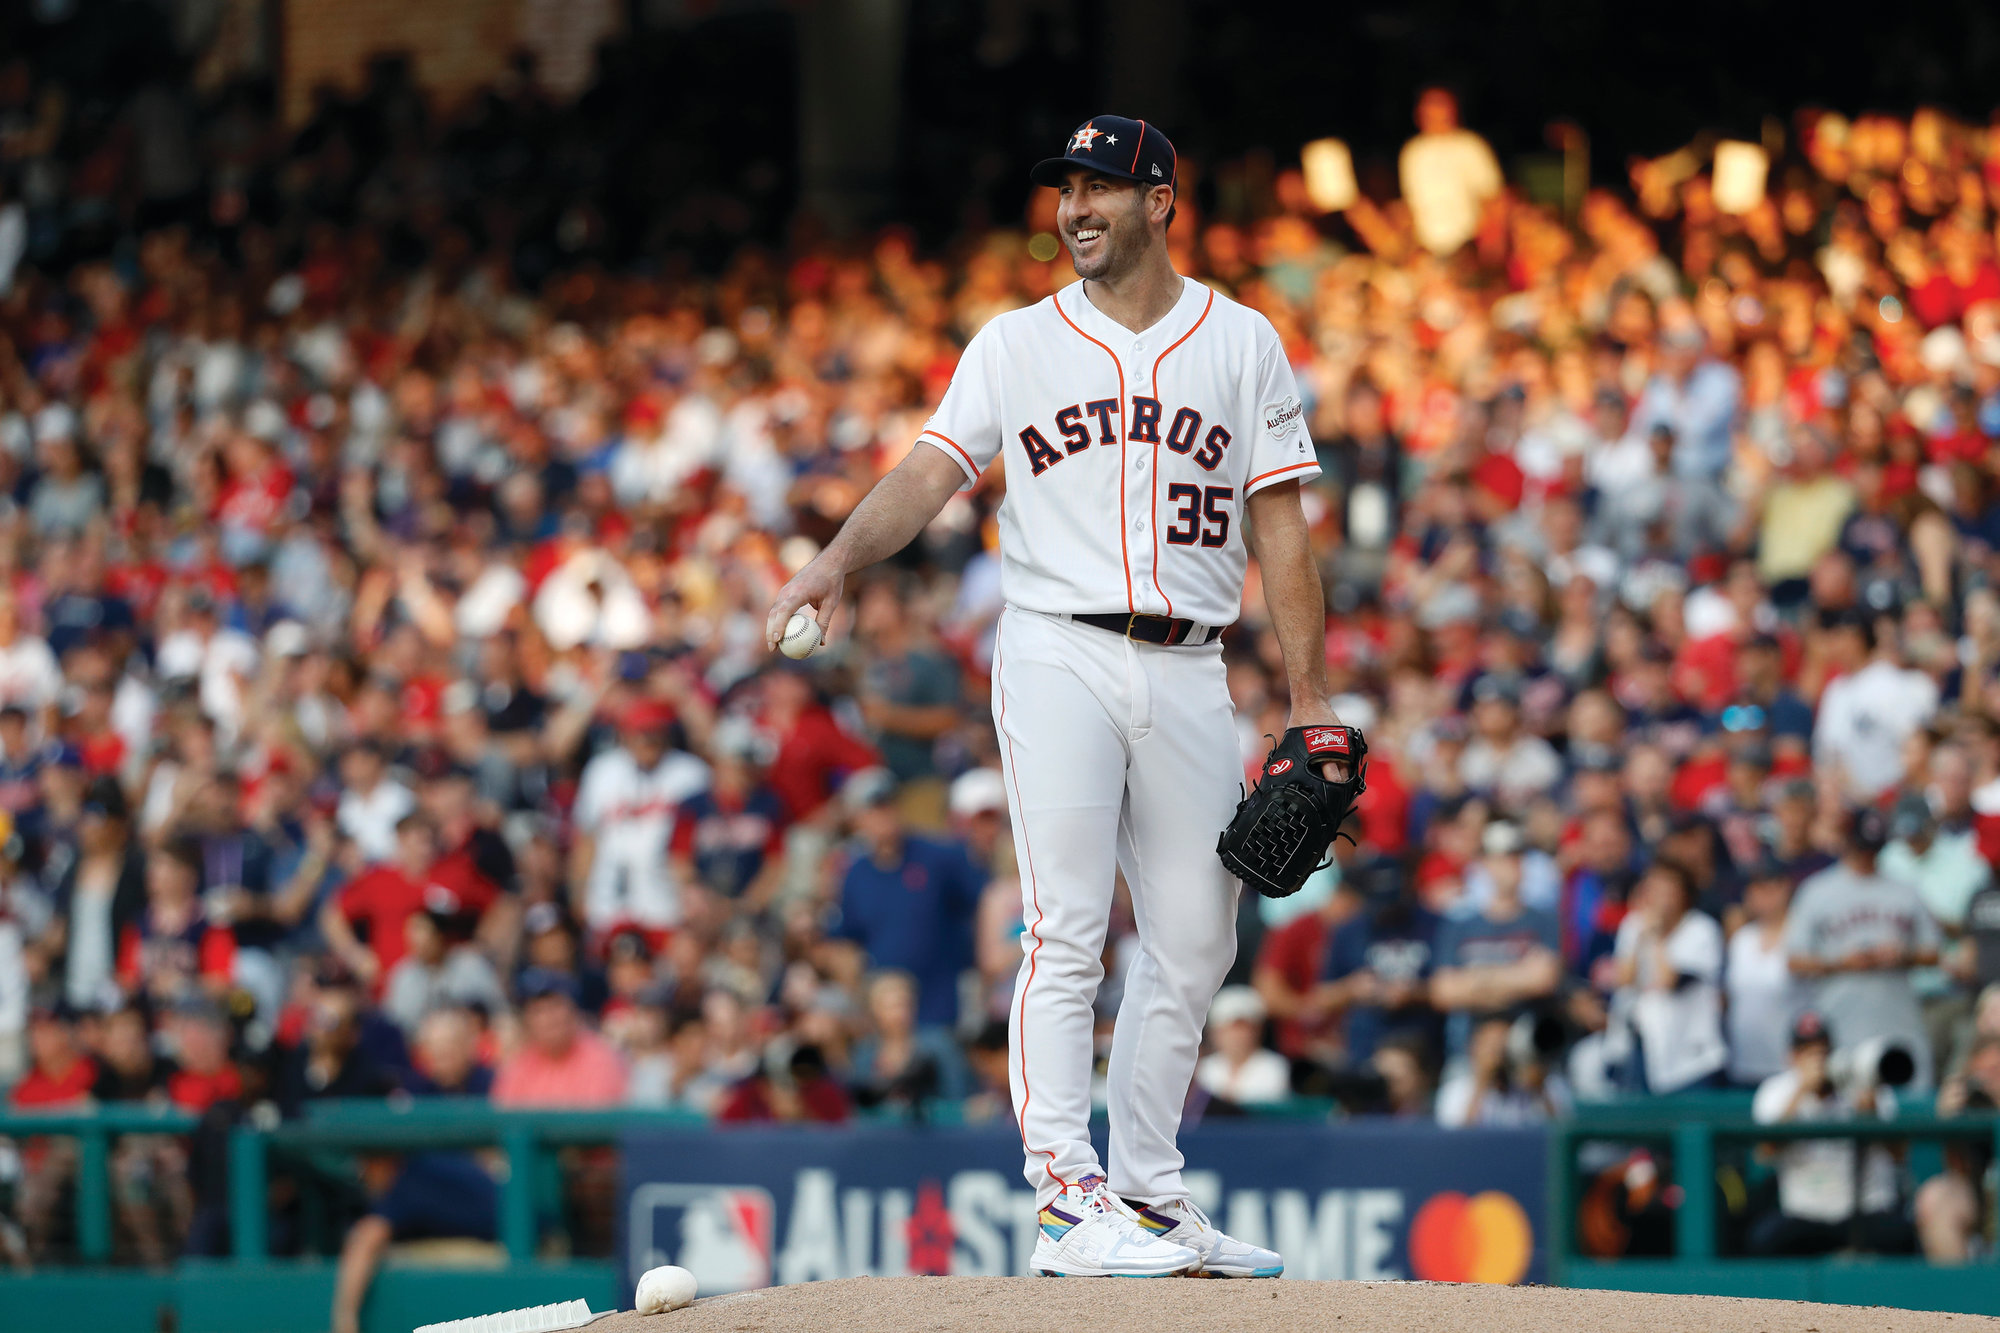 THE ASSOCIATED PRESS  American League starting pitcher Justin  Verlander of the Houston Astros smiles as he prepares to pitch during the first inning of the All-Star Game on Tuesday in Cleveland. The AL won 4-3 over the National League.